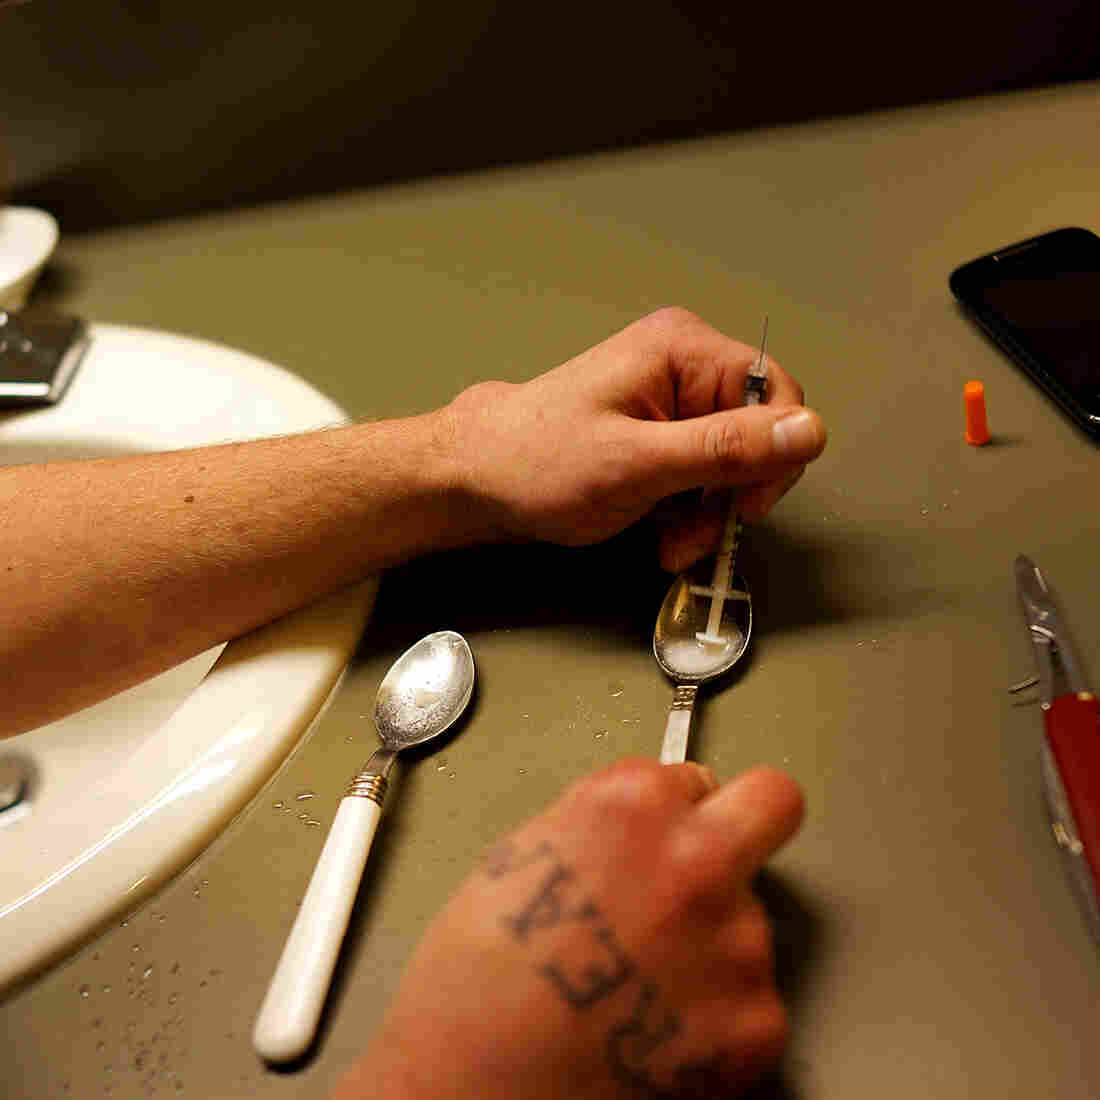 A user prepares drugs for injection in 2014 in St. Johnsbury, Vt.